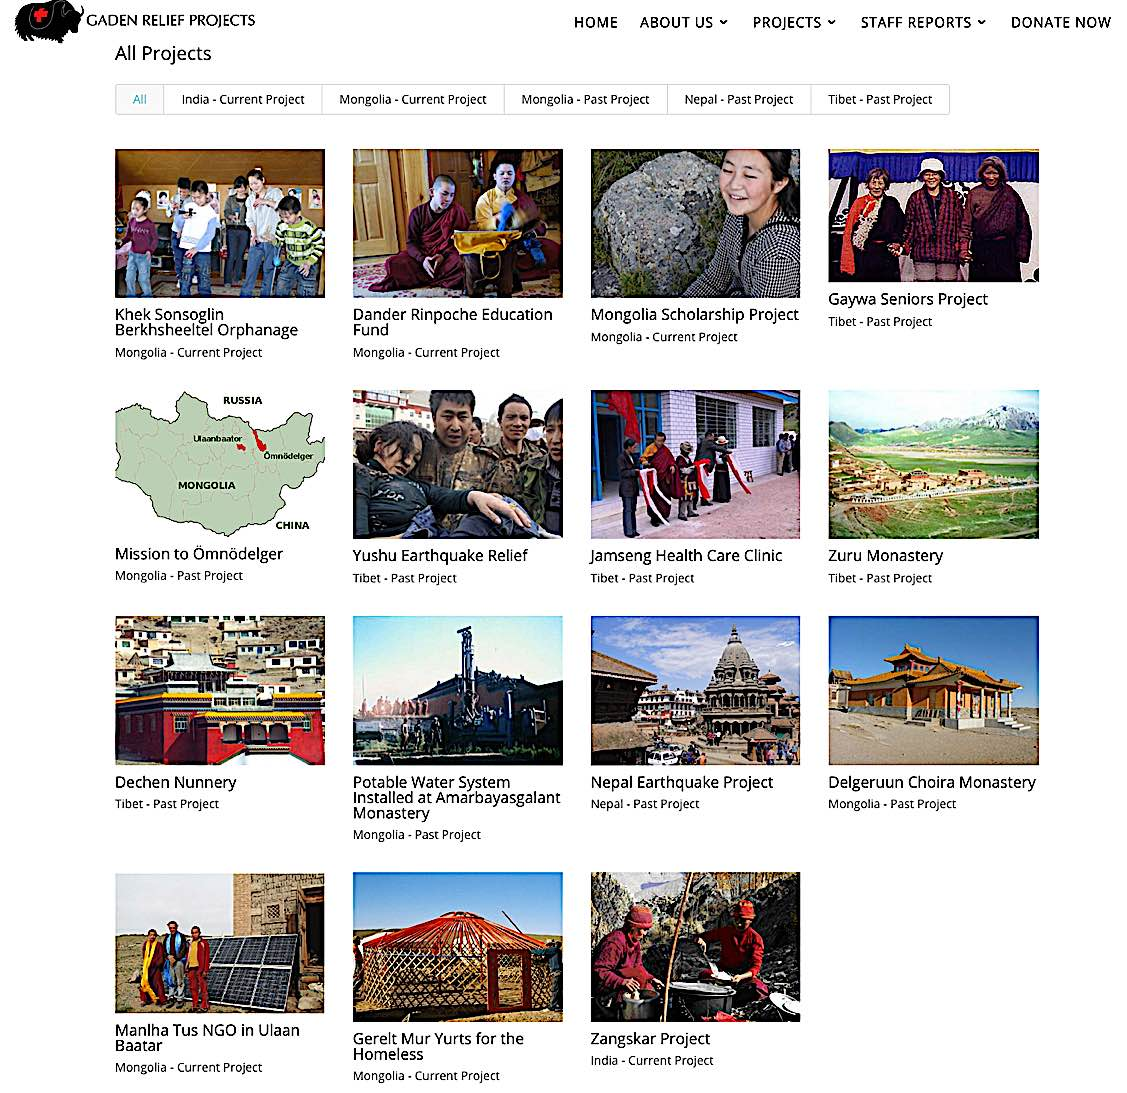 Buddha Weekly Some of the relief projects for Gaden Relief in India Mongolia Nepal and Tibet Buddhism